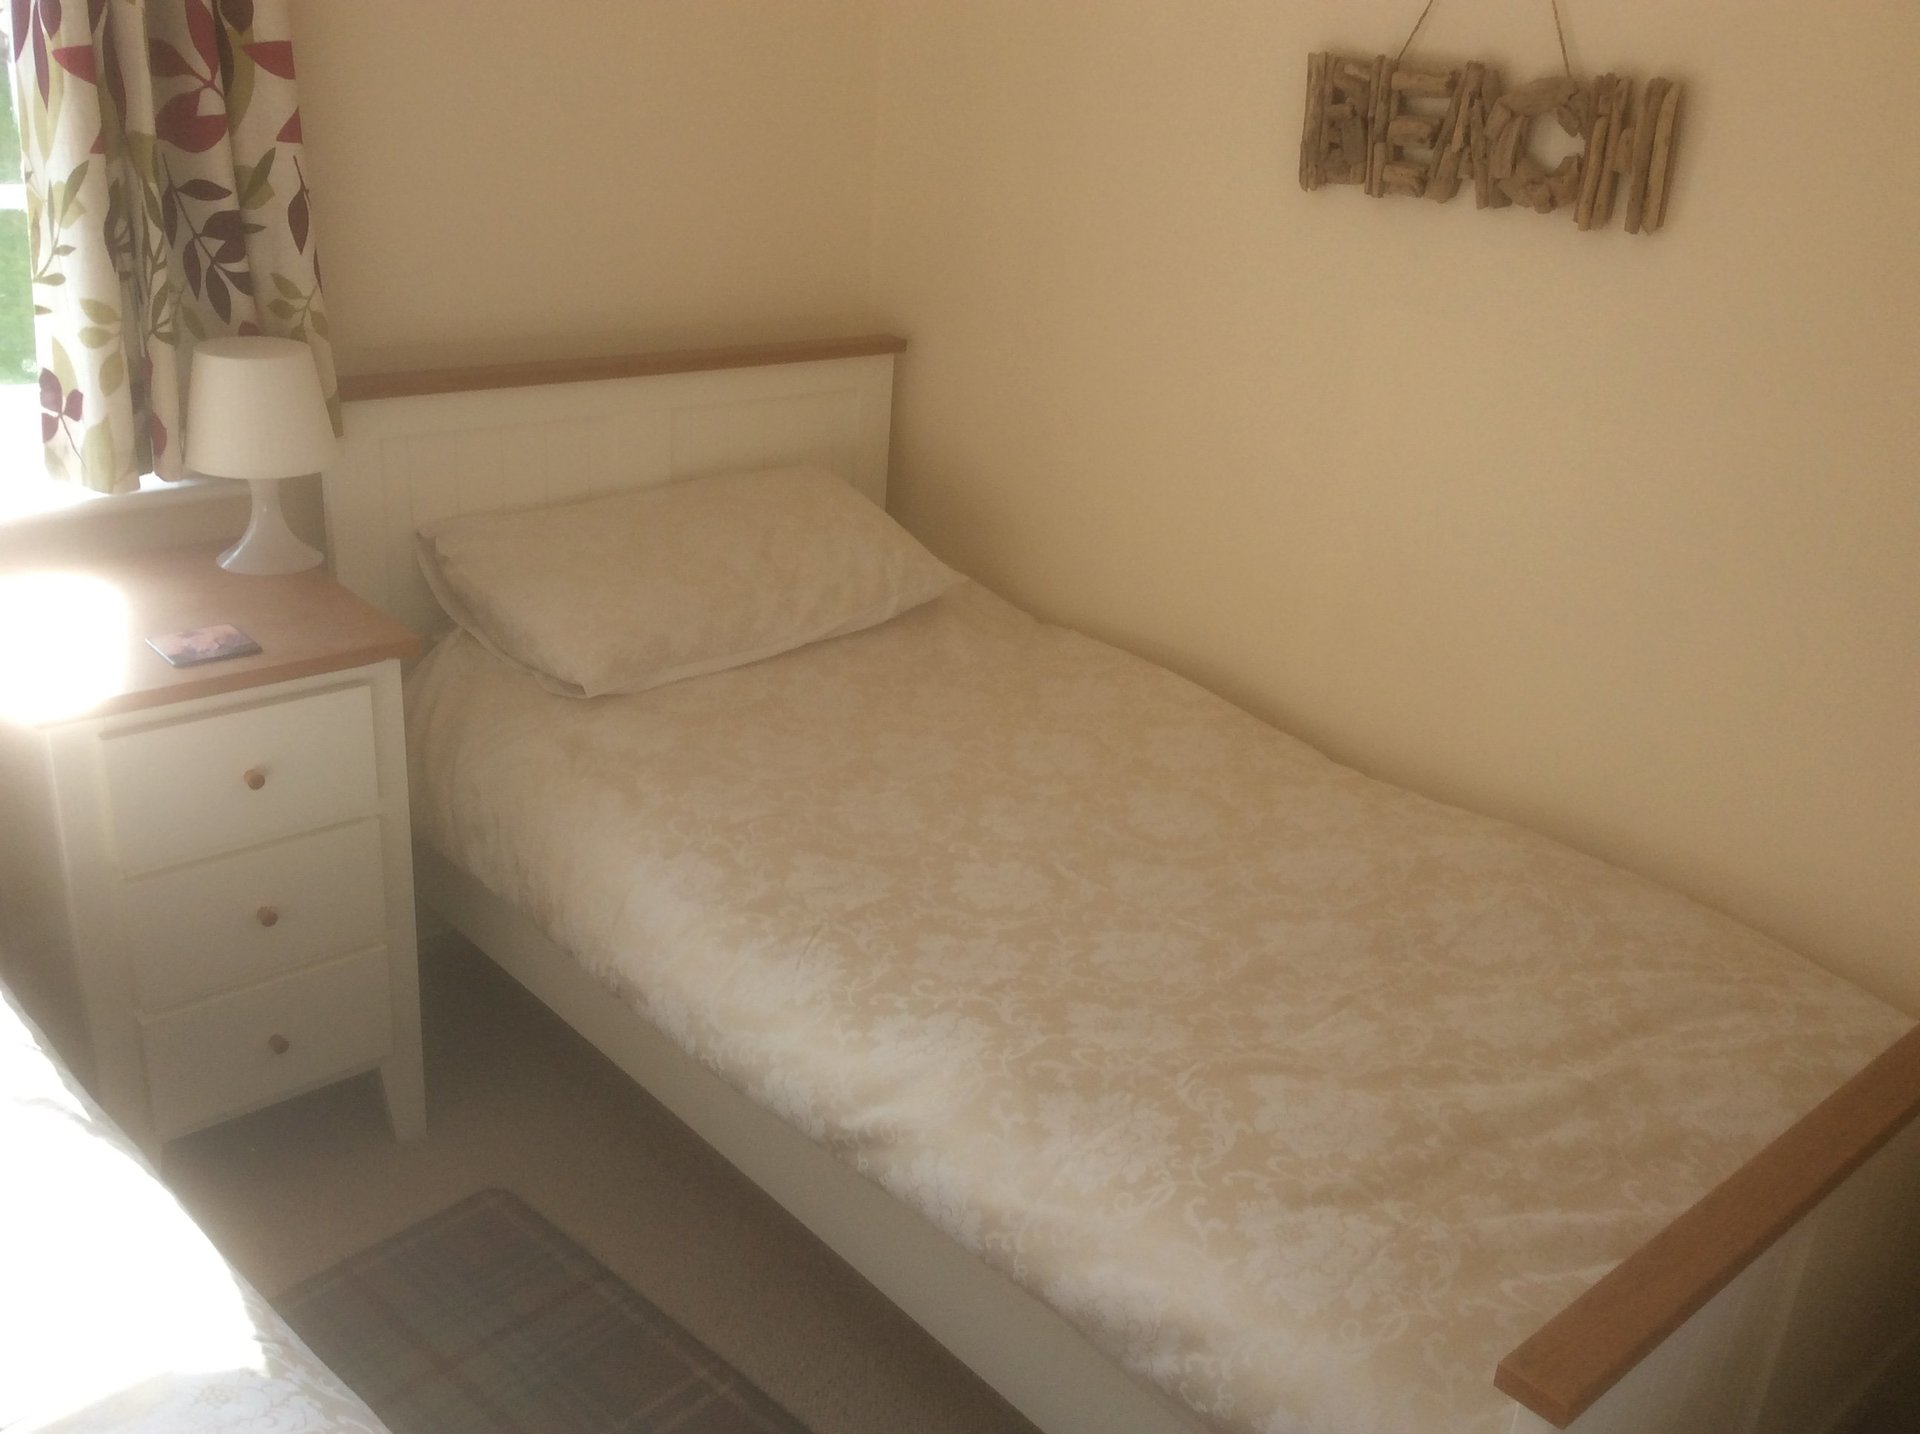 image of the bedroom